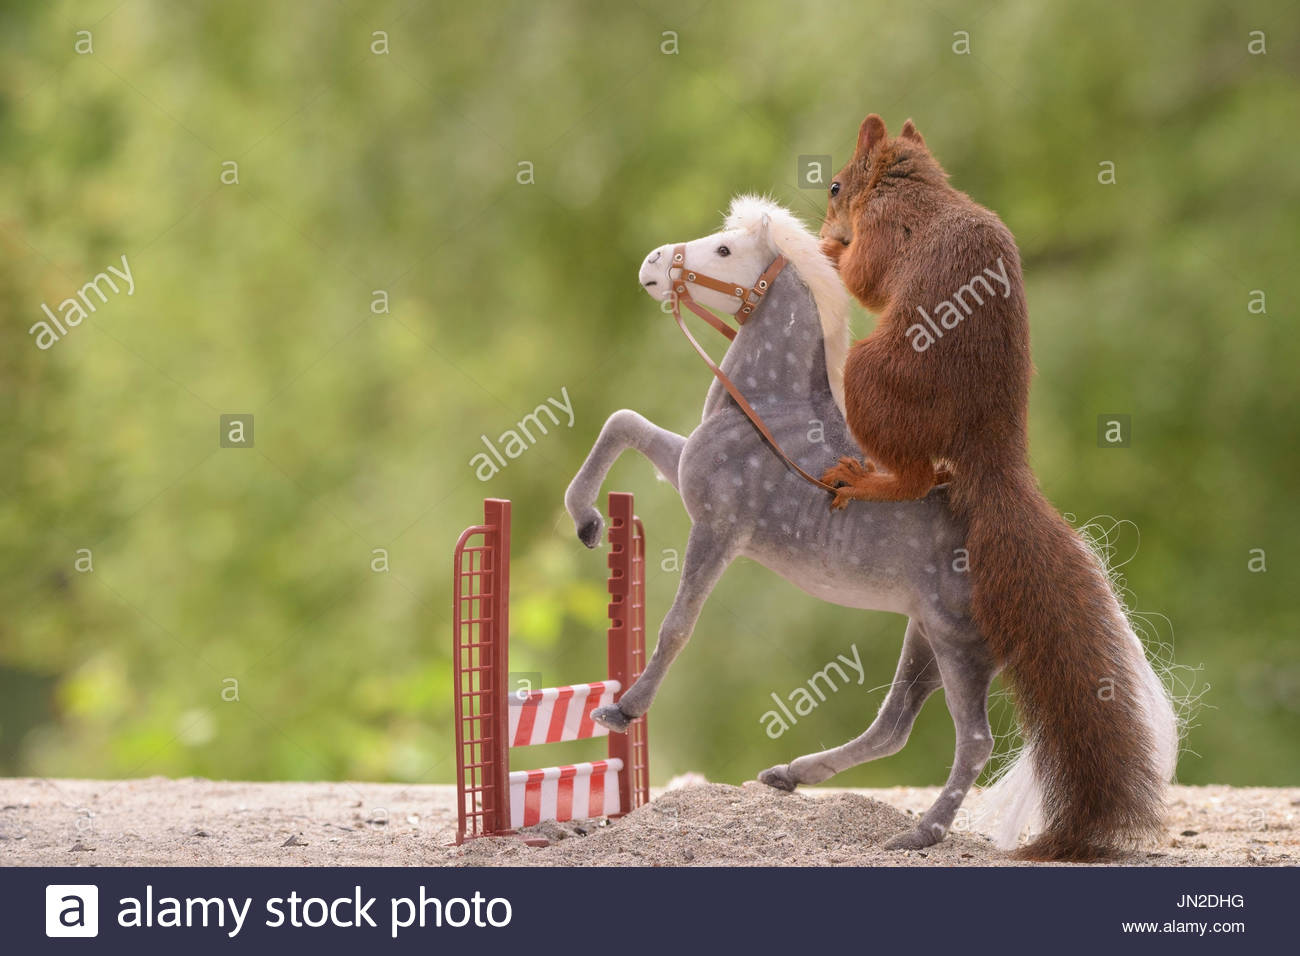 red squirrel standing on jumping horse with a hurdle - Stock Image